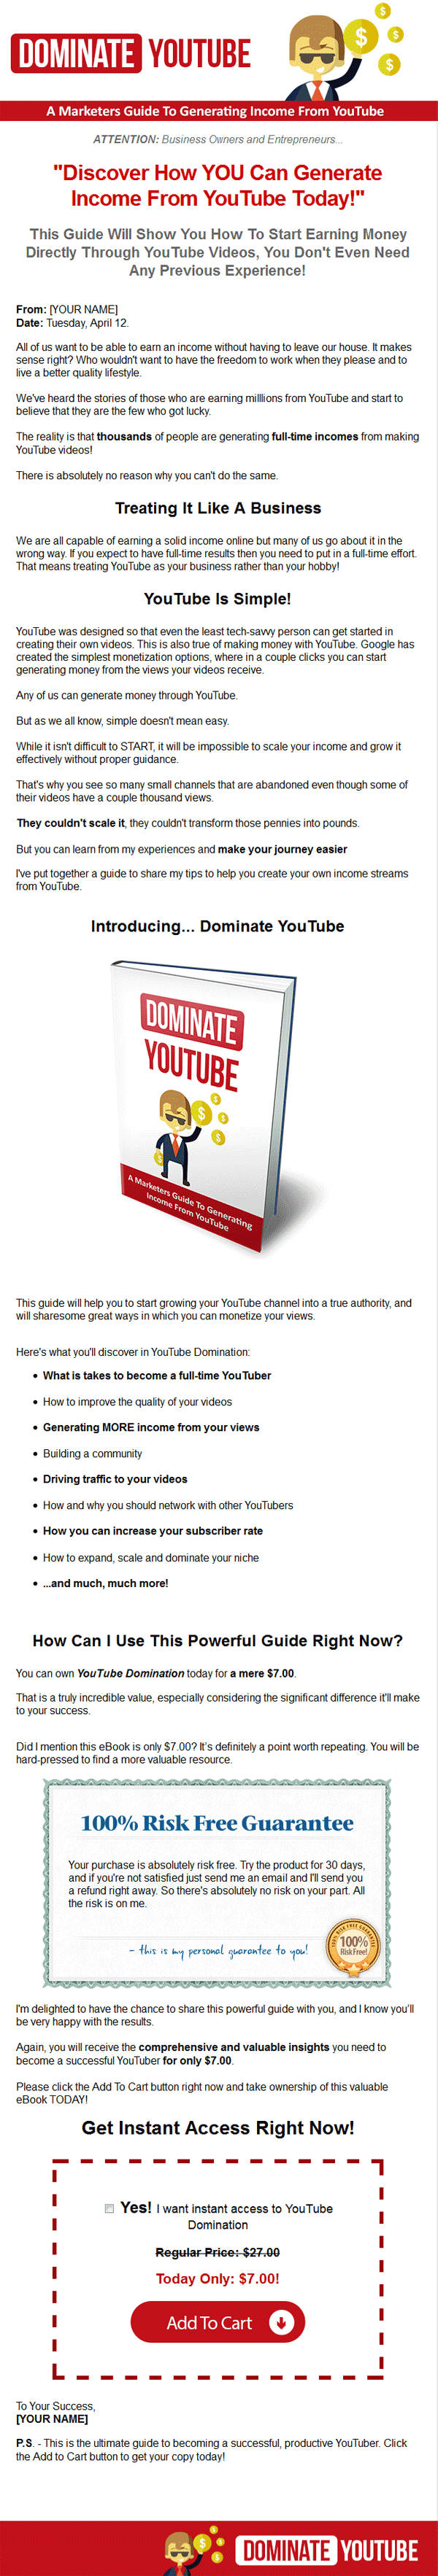 dominate youtube ebook